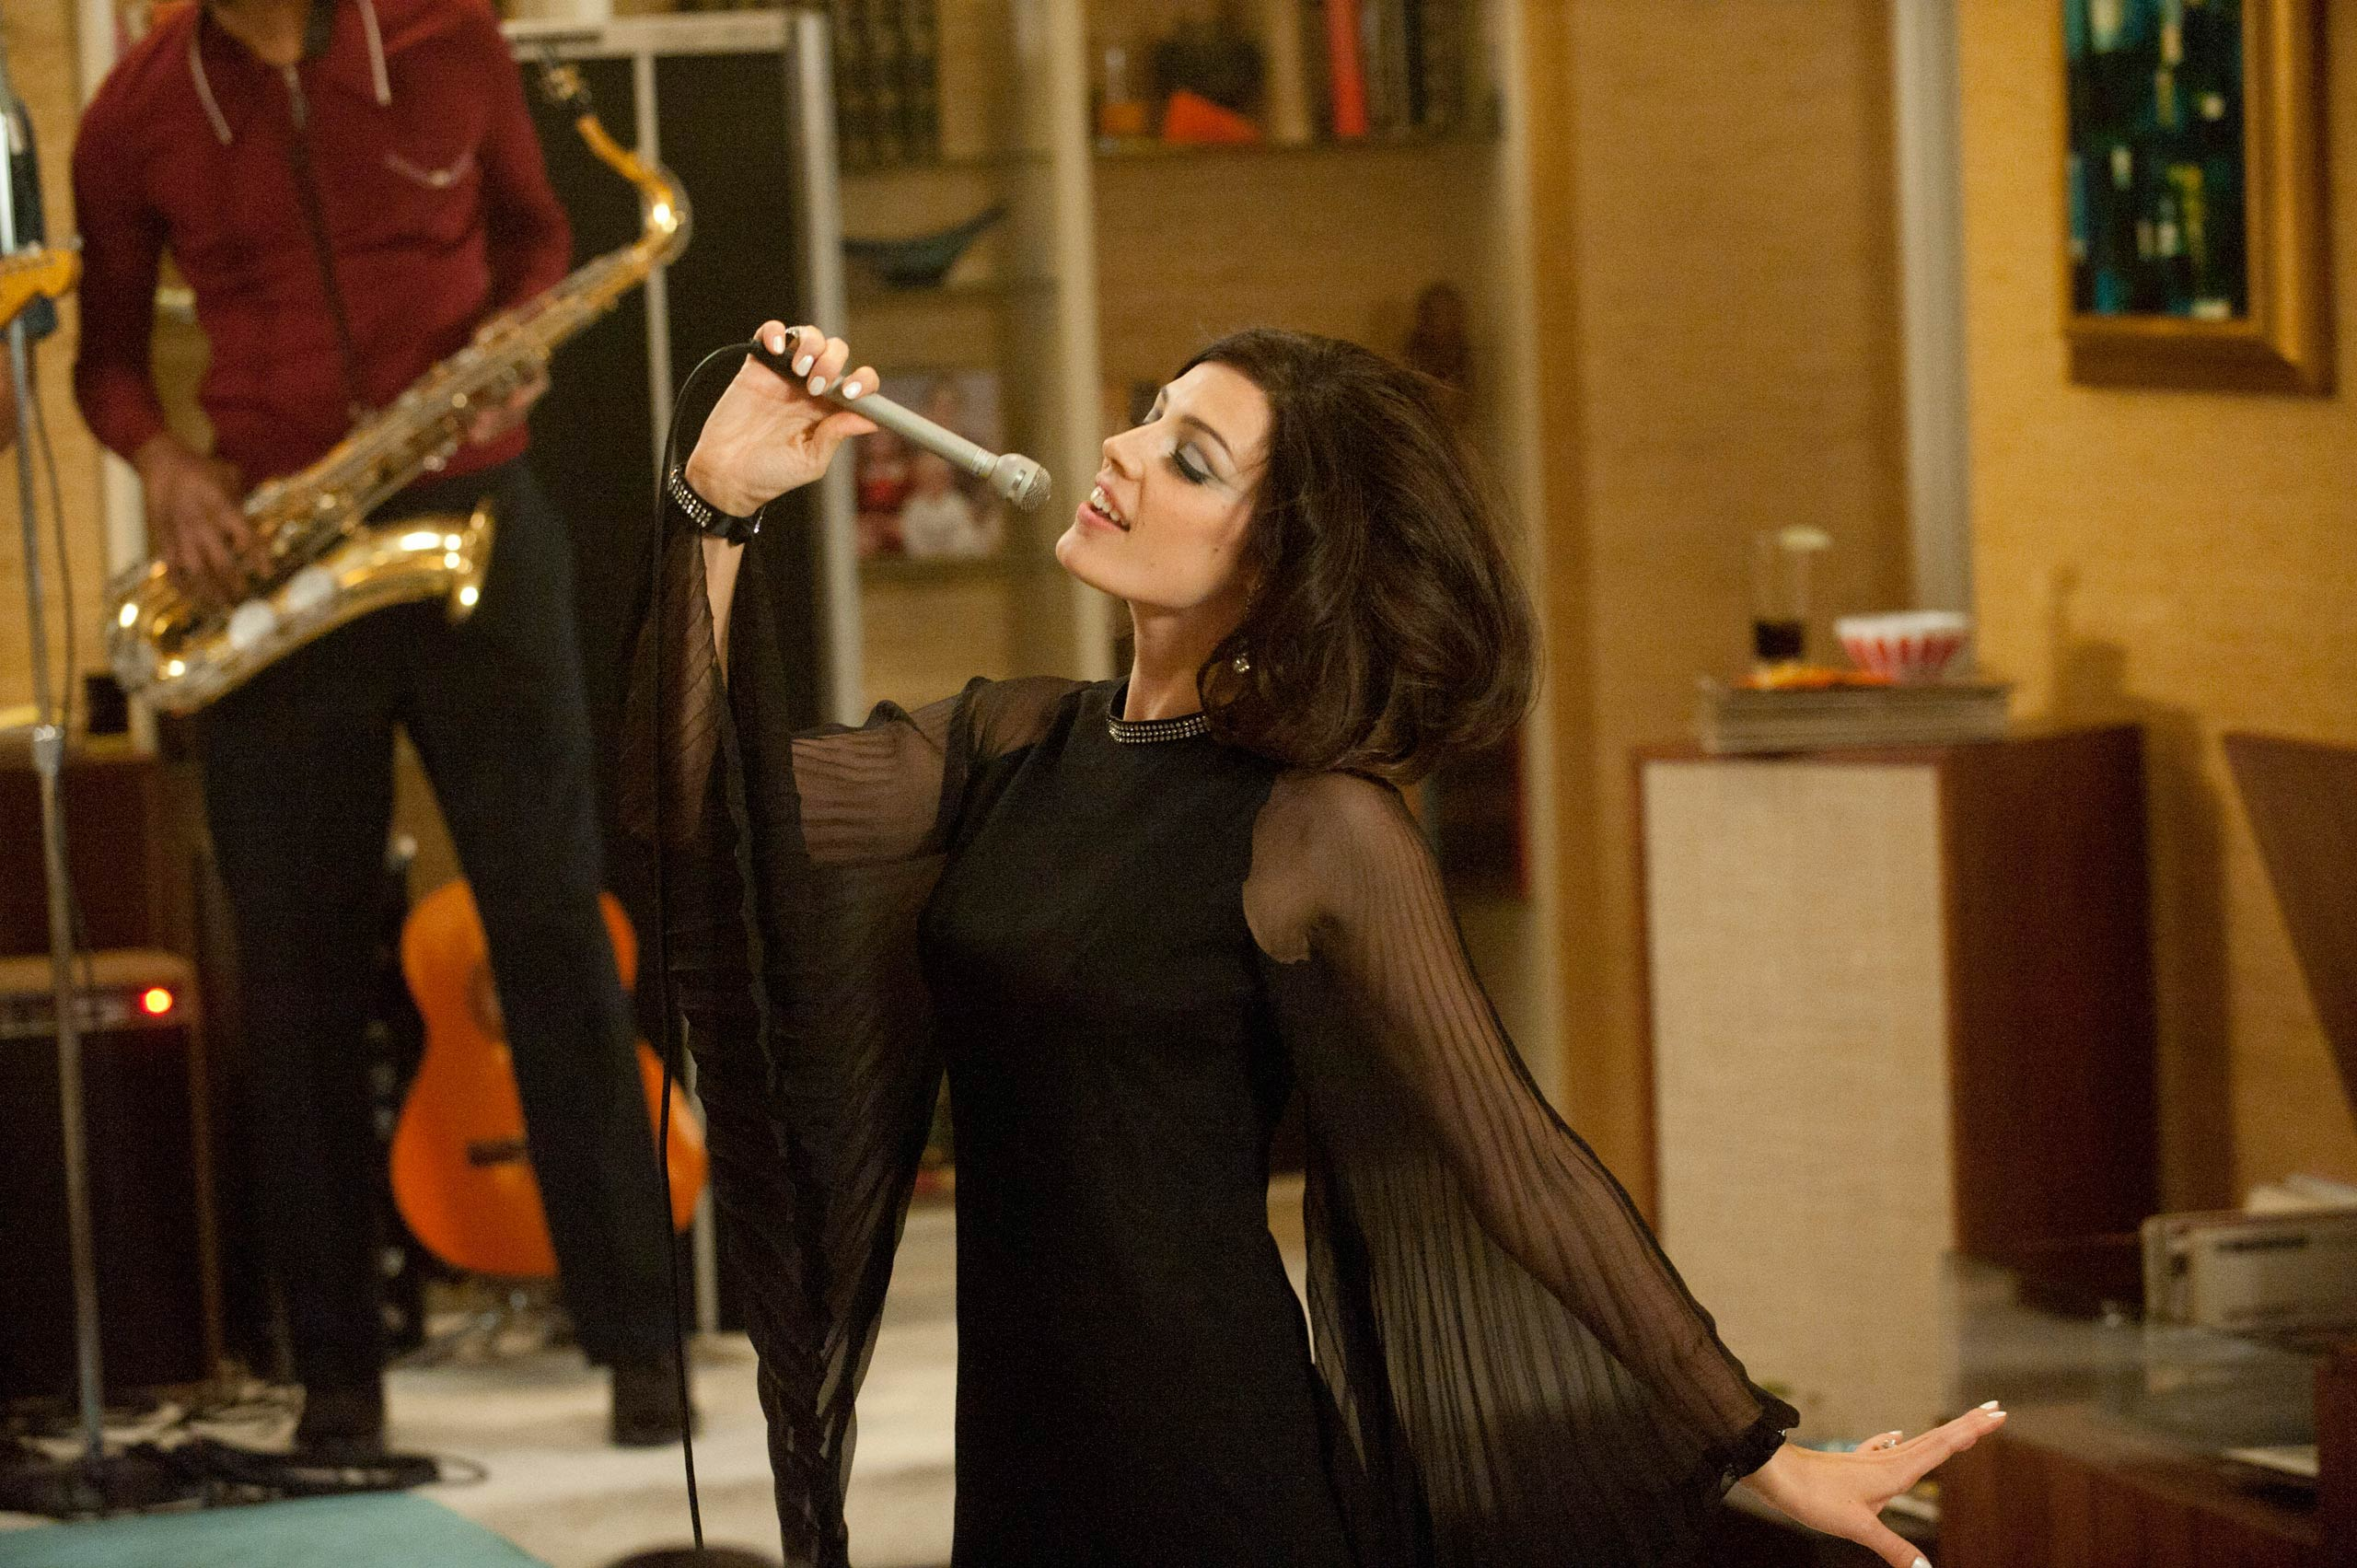 <strong>Megan's Zou Bisou Bisou dress</strong>                                    Megan surprises Don and her party guests with a performance as sultry as her little black dress.